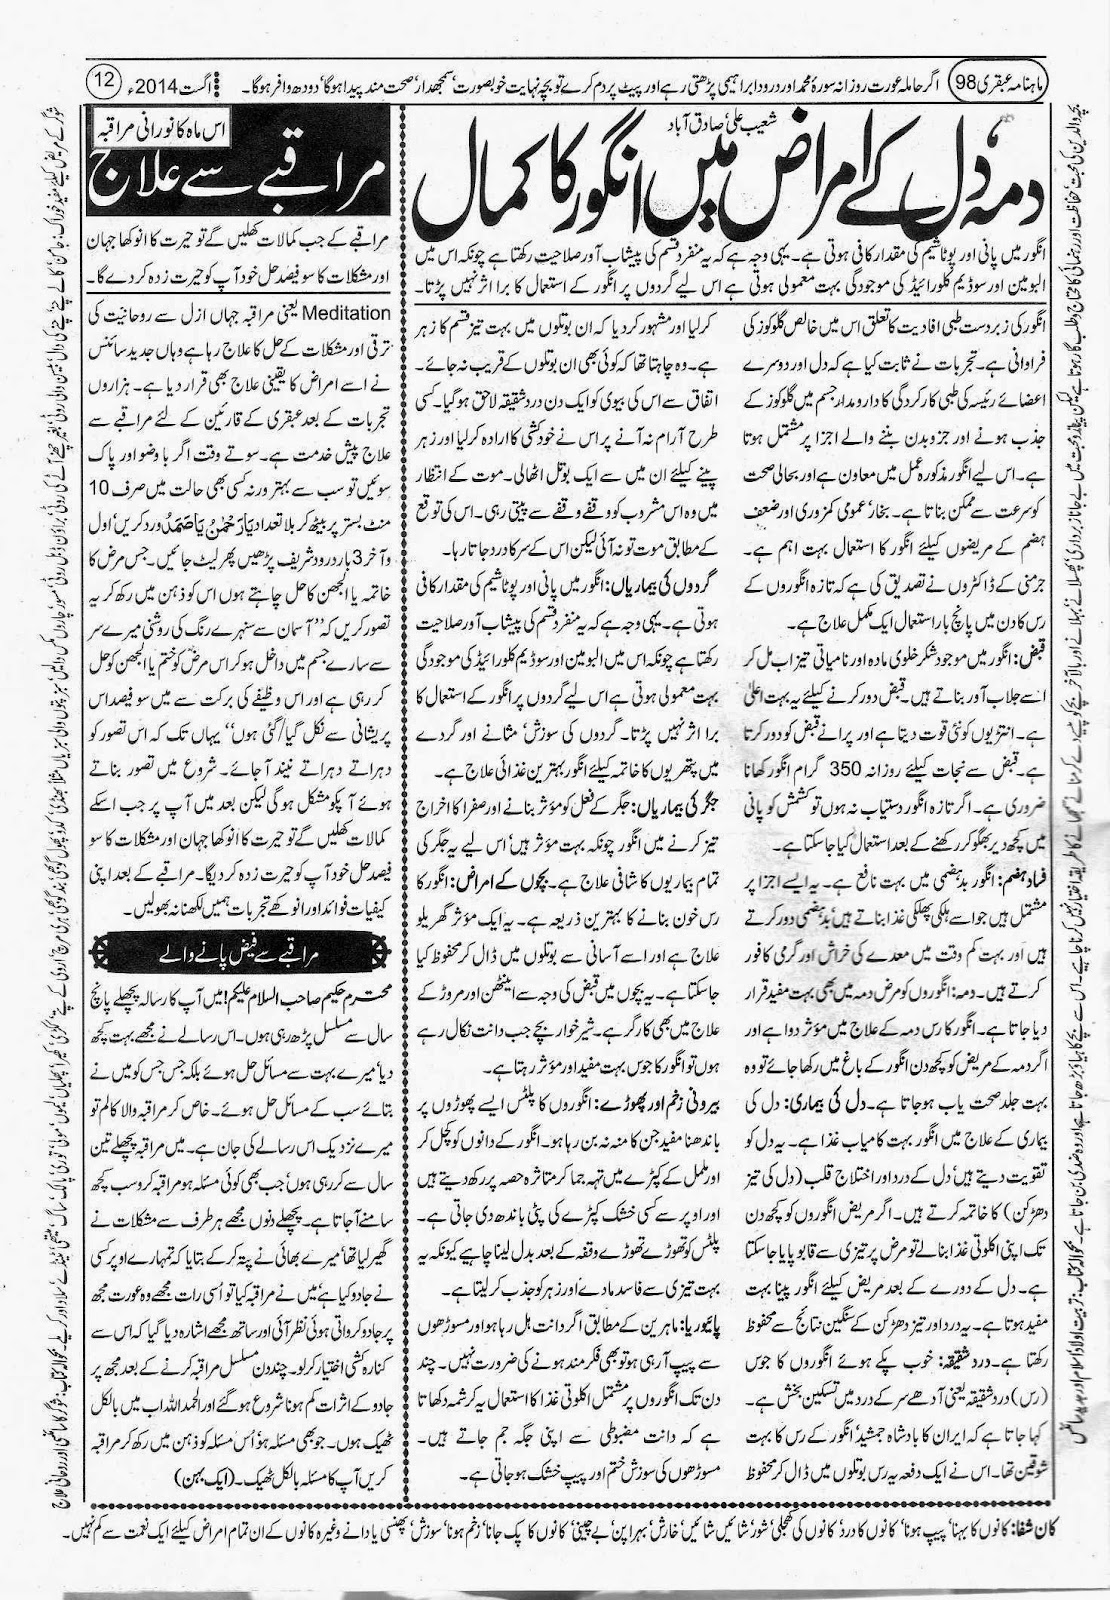 Ubqari August 2014 Page 12